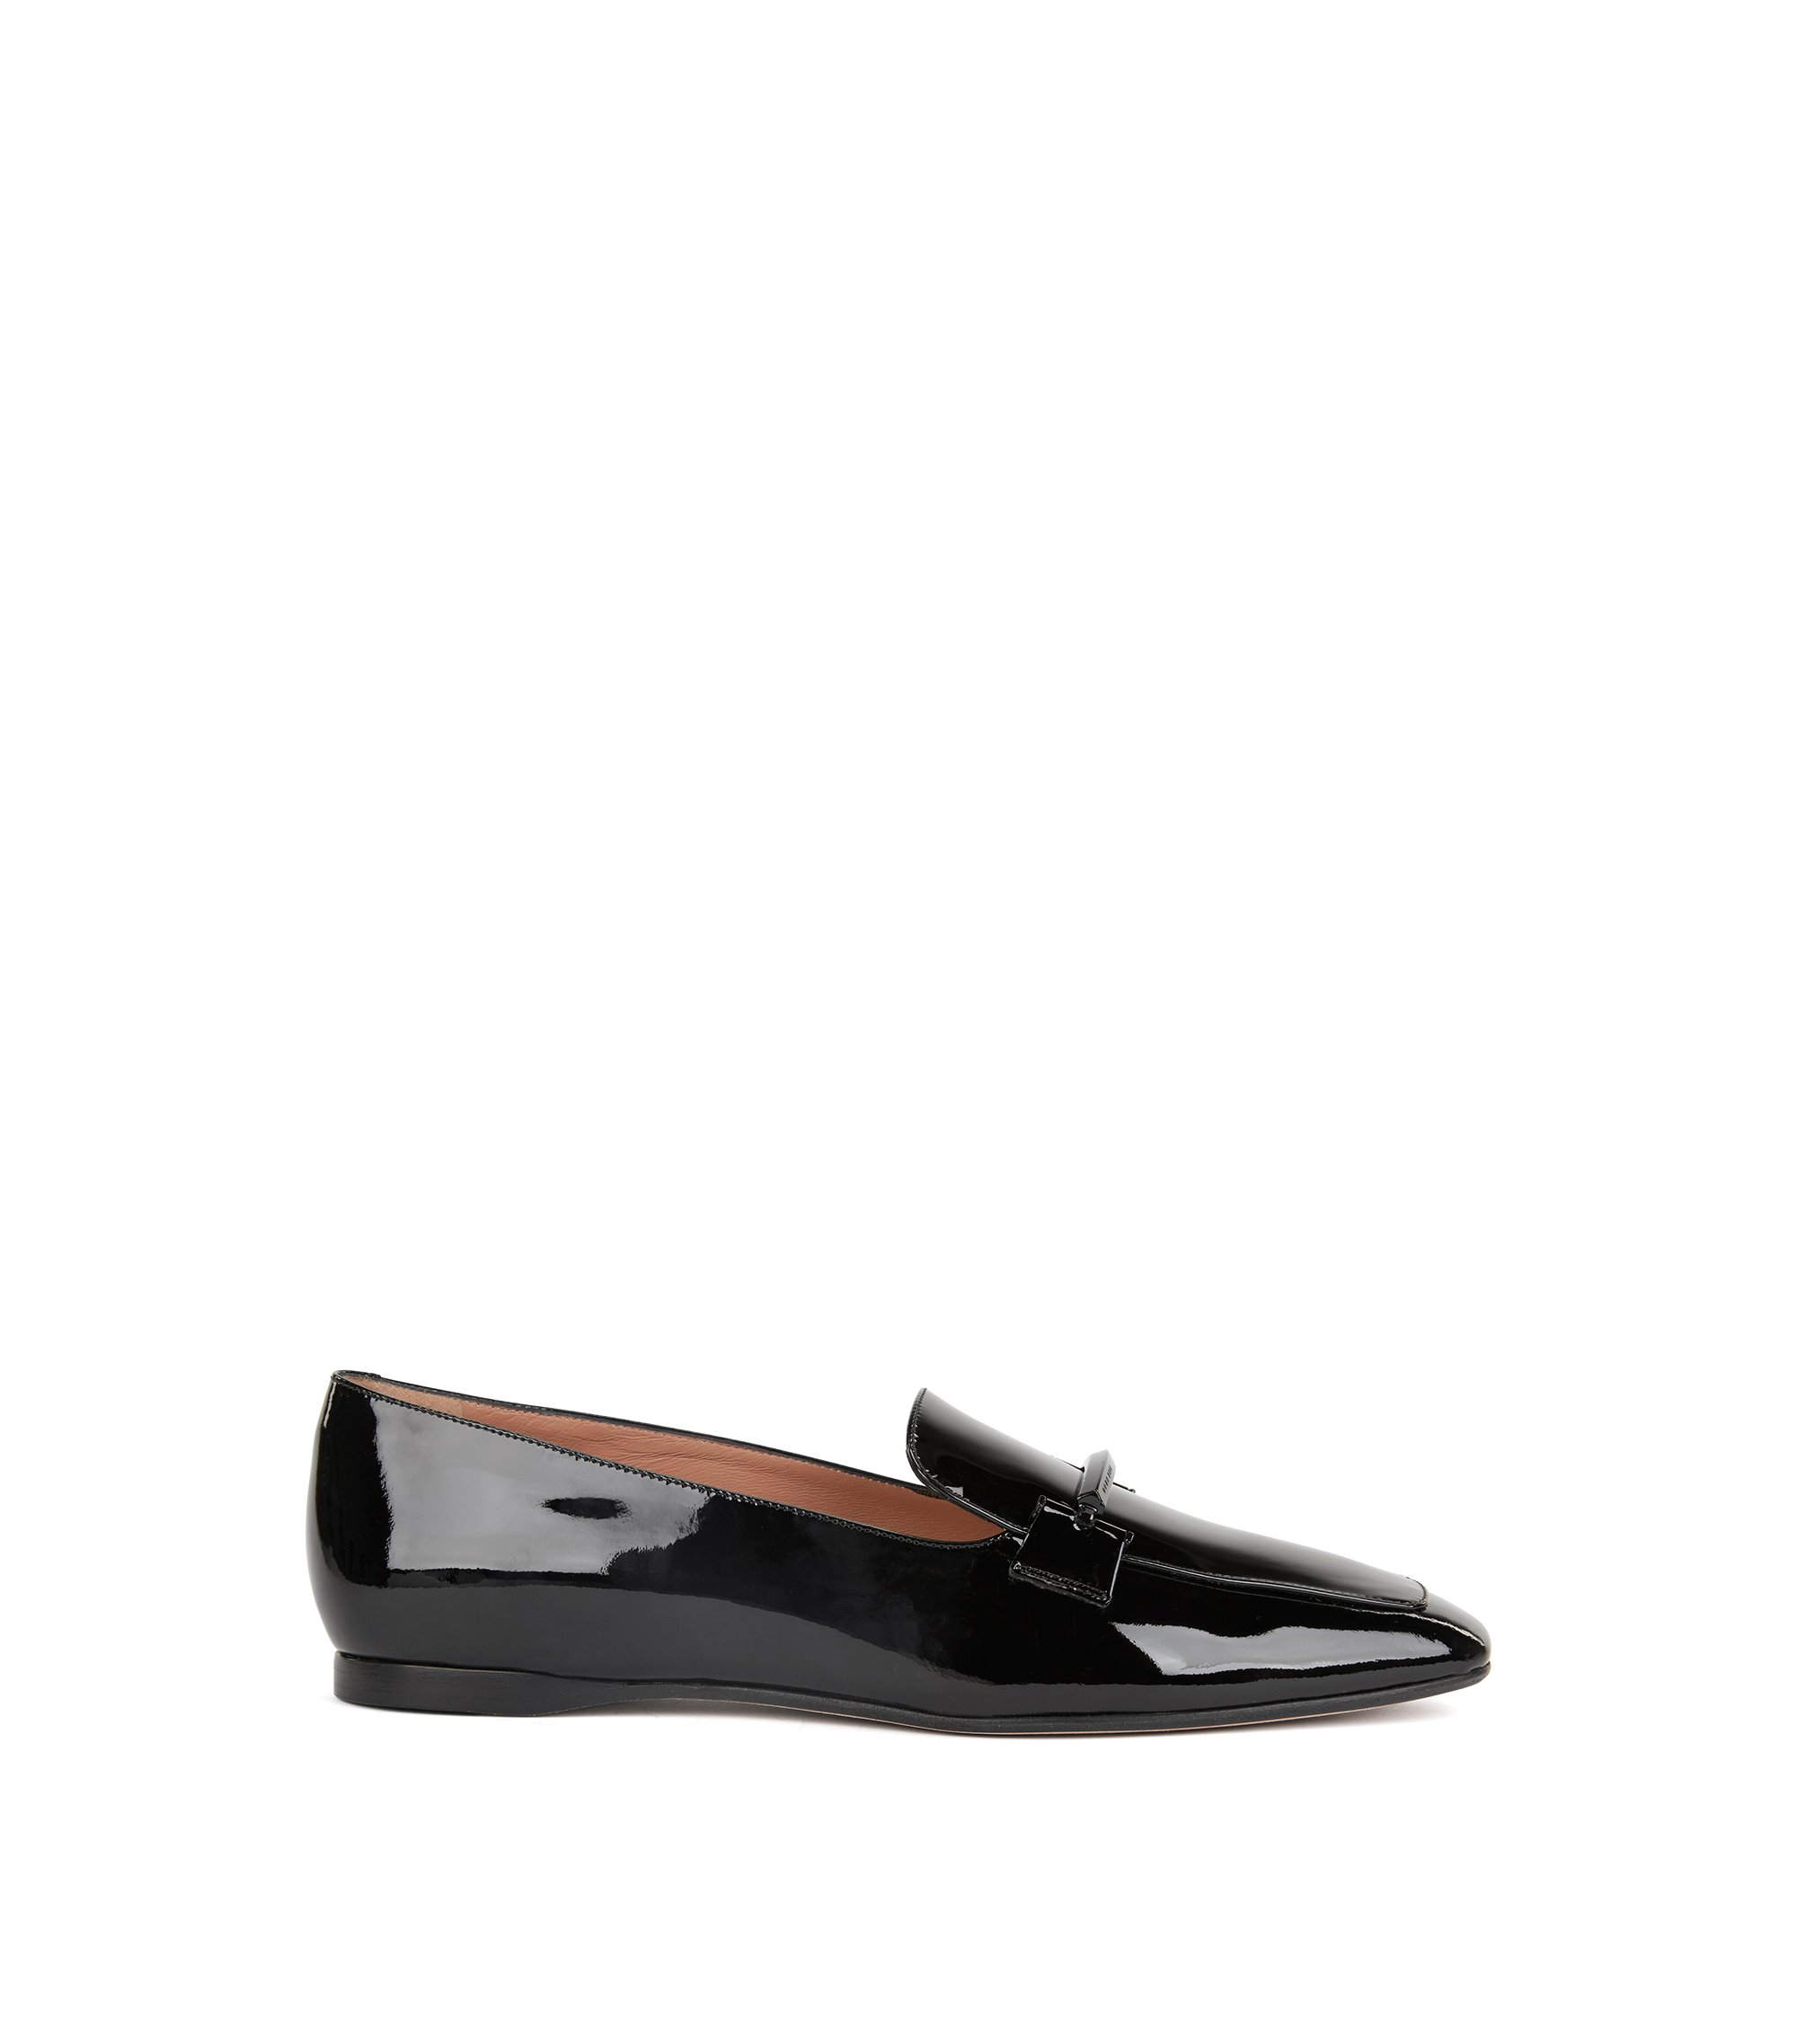 Italian-made patent-leather loafers with metal trim, Black